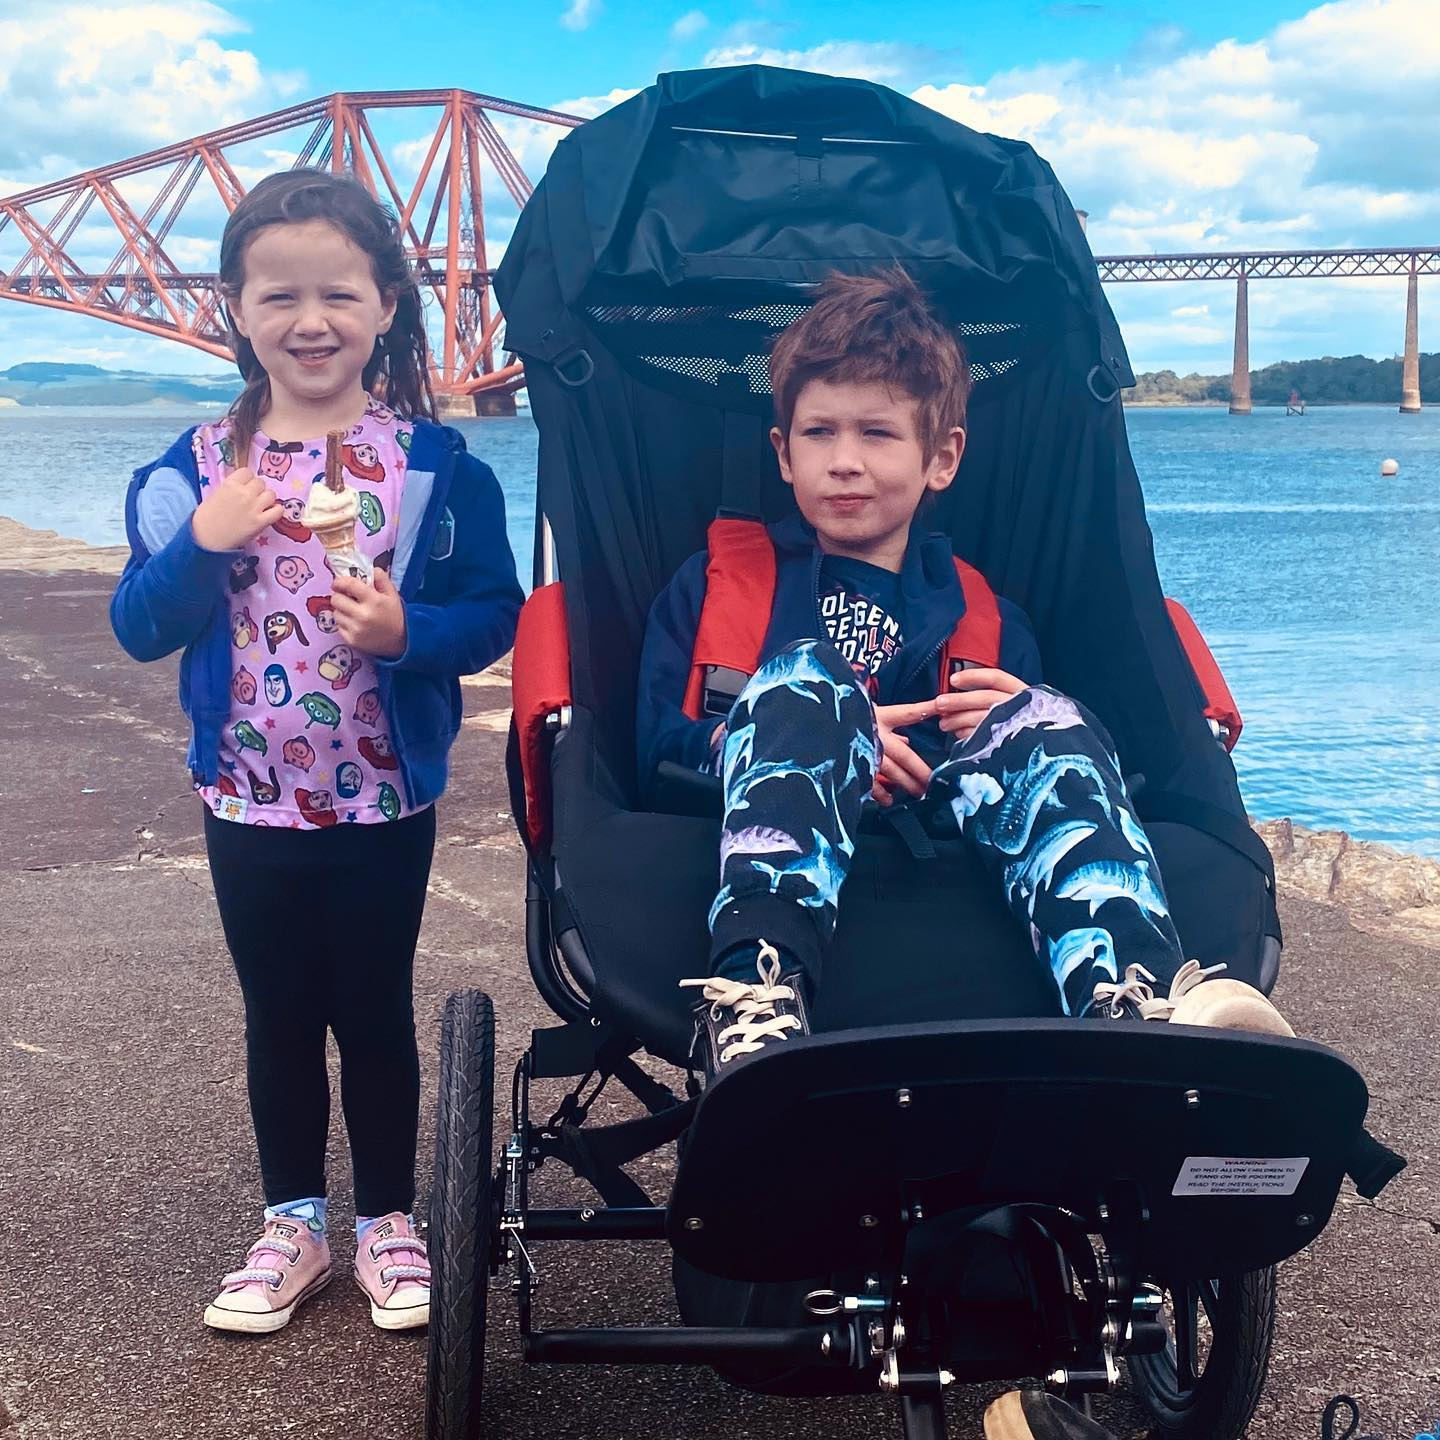 Brody in his Whizz-Kidz buggy with his little sister